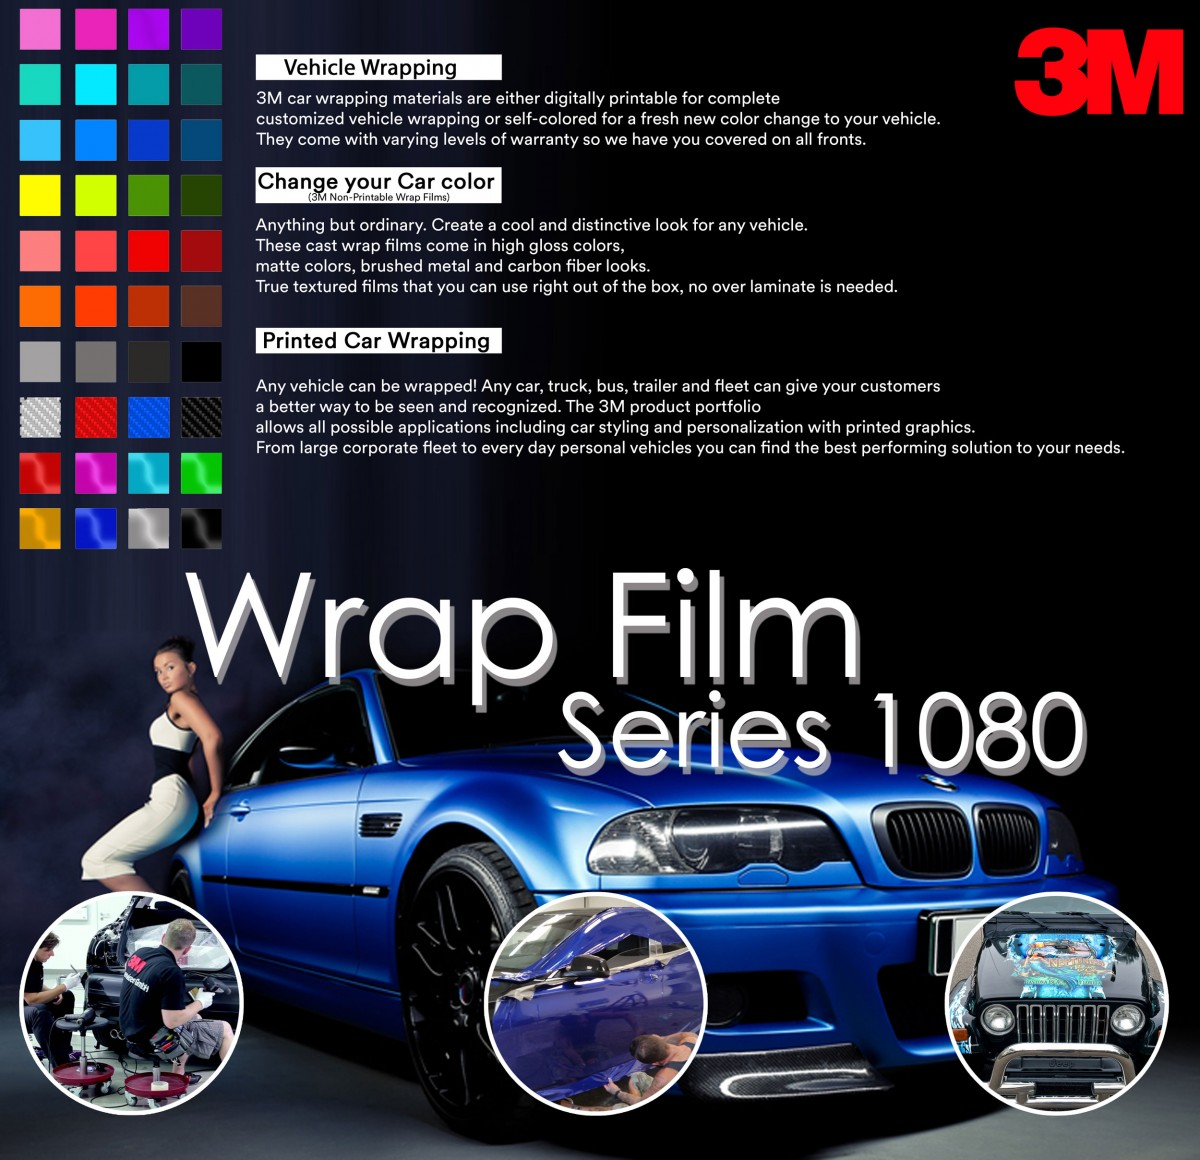 3m Car Wrapping Al Sayegh Auto Repairs Uae